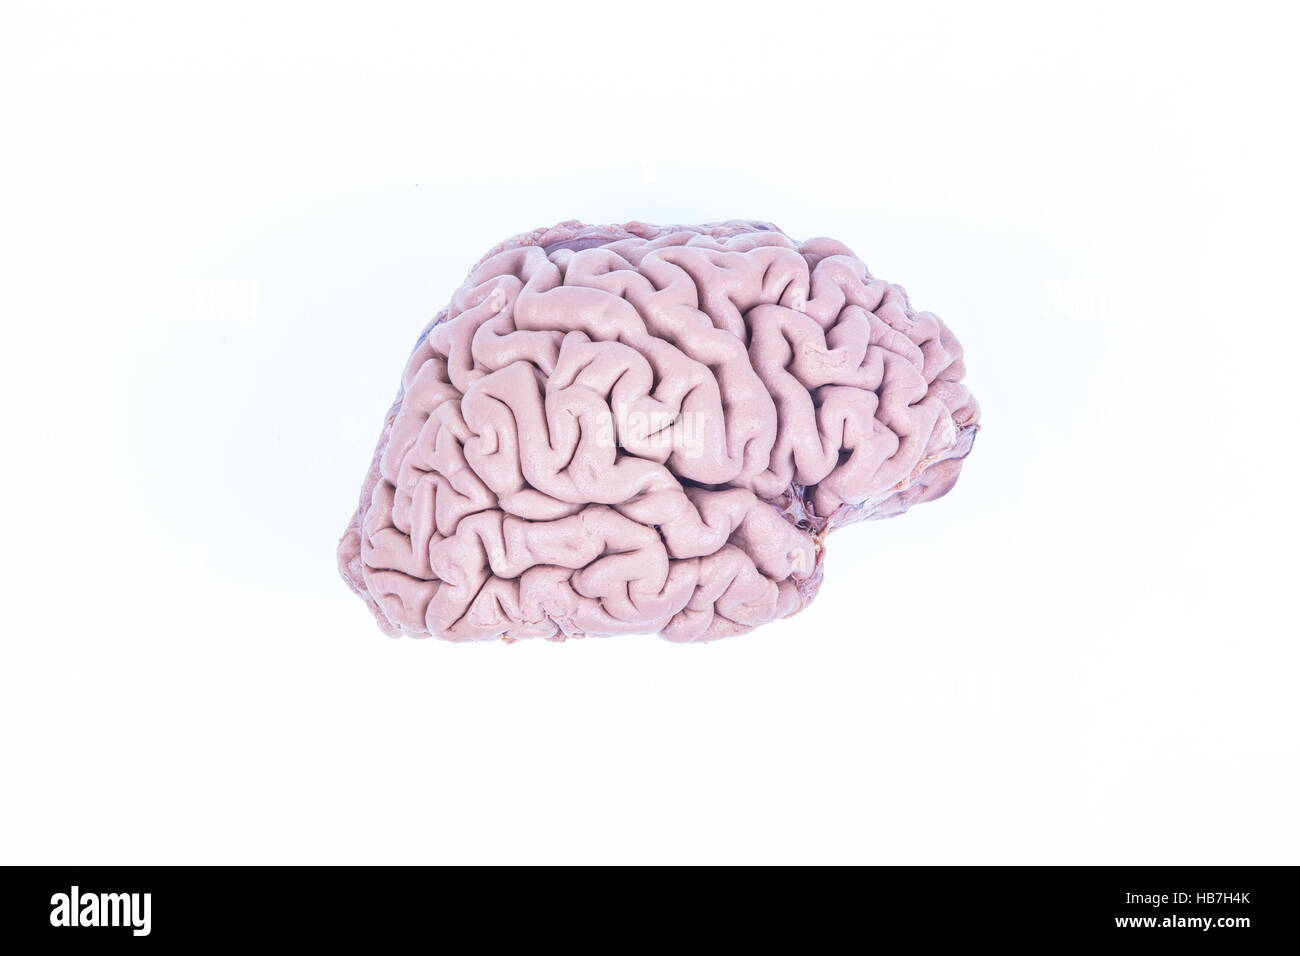 real human brain isolated on white - Stock Image